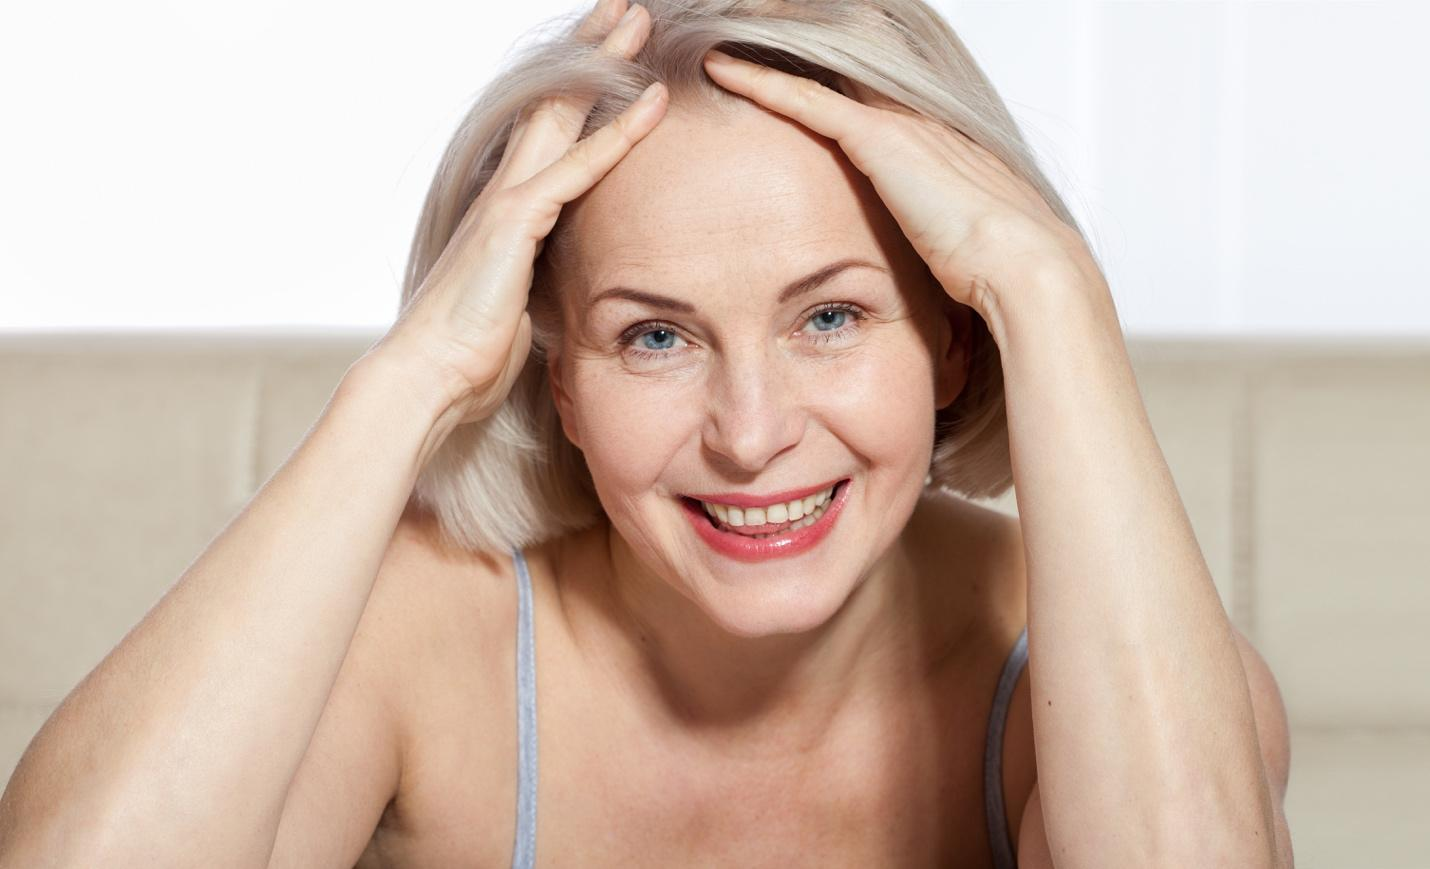 The cost of a facelift from a board certified plastic surgeon is well worth it when you consider safety and outcomes